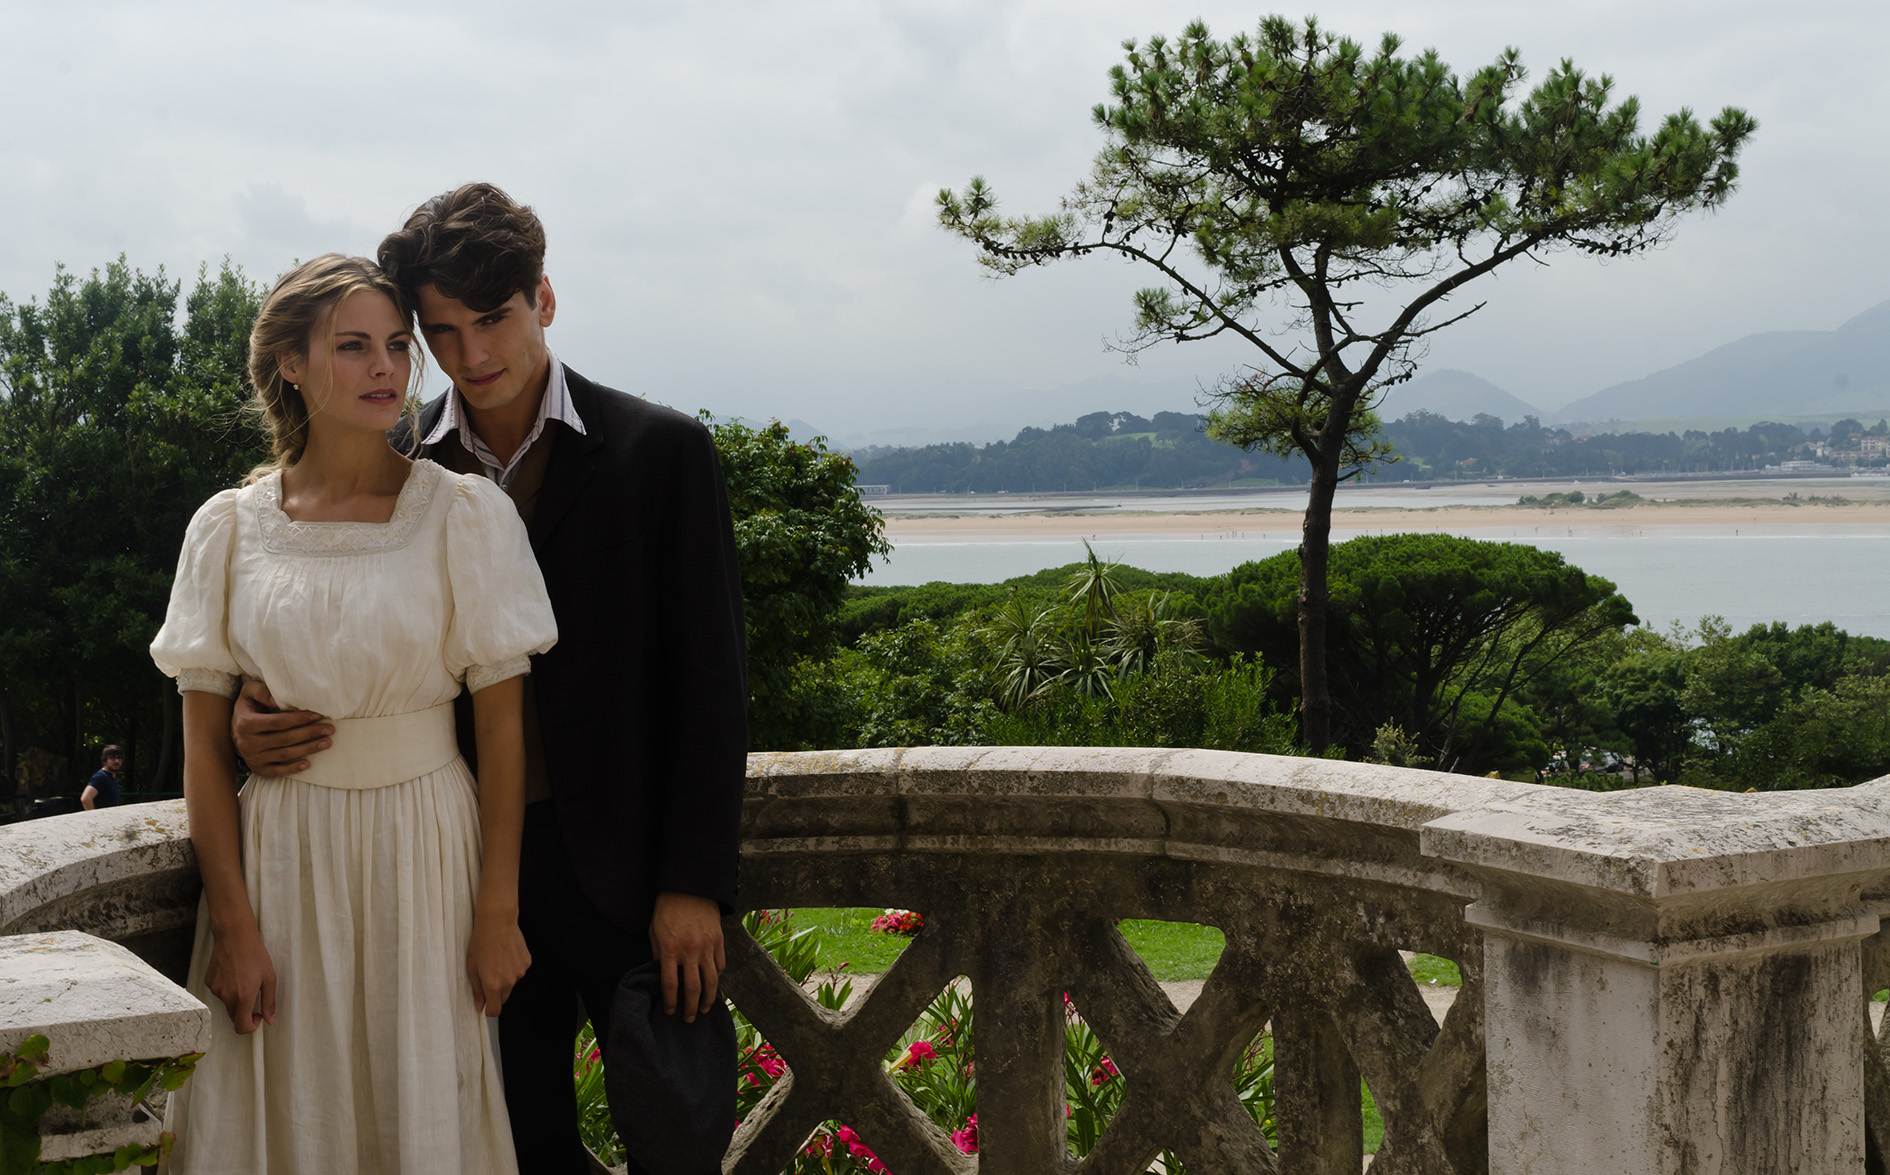 Gran Hotel | Julio y Alicia | Vme tv